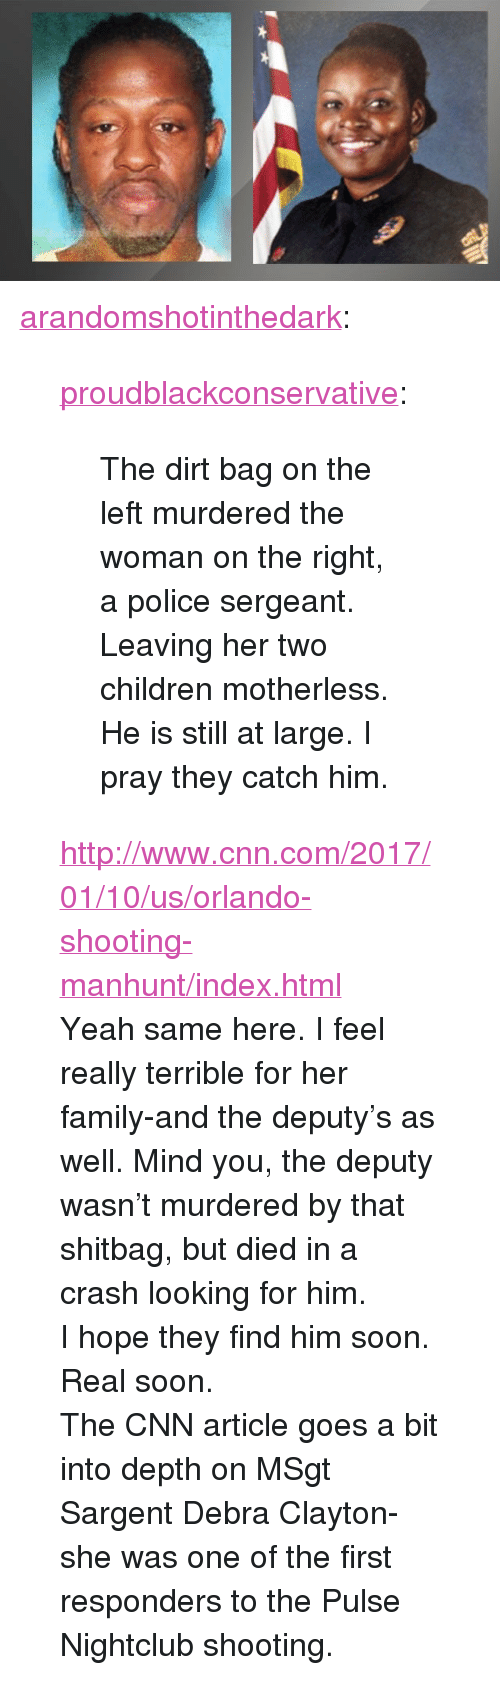 "Children, cnn.com, and Family: <p><a href=""http://arandomshotinthedark.tumblr.com/post/155680879220/proudblackconservative-the-dirt-bag-on-the-left"" class=""tumblr_blog"">arandomshotinthedark</a>:</p>  <blockquote><p><a href=""https://proudblackconservative.tumblr.com/post/155638226429/the-dirt-bag-on-the-left-murdered-the-woman-on-the"" class=""tumblr_blog"">proudblackconservative</a>:</p><blockquote><p>The dirt bag on the left murdered the woman on the right, a police sergeant. Leaving her two children motherless. He is still at large. I pray they catch him.</p></blockquote> <p><a href=""http://www.cnn.com/2017/01/10/us/orlando-shooting-manhunt/index.html"">http://www.cnn.com/2017/01/10/us/orlando-shooting-manhunt/index.html</a><br/></p><p>Yeah same here. I feel really terrible for her family-and the deputy's as well. Mind you, the deputy wasn't murdered by that shitbag, but died in a crash looking for him.</p><p>I hope they find him soon. Real soon.</p><p>The CNN article goes a bit into depth on MSgt Sargent Debra Clayton-she was one of the first responders to the Pulse Nightclub shooting.</p></blockquote>"